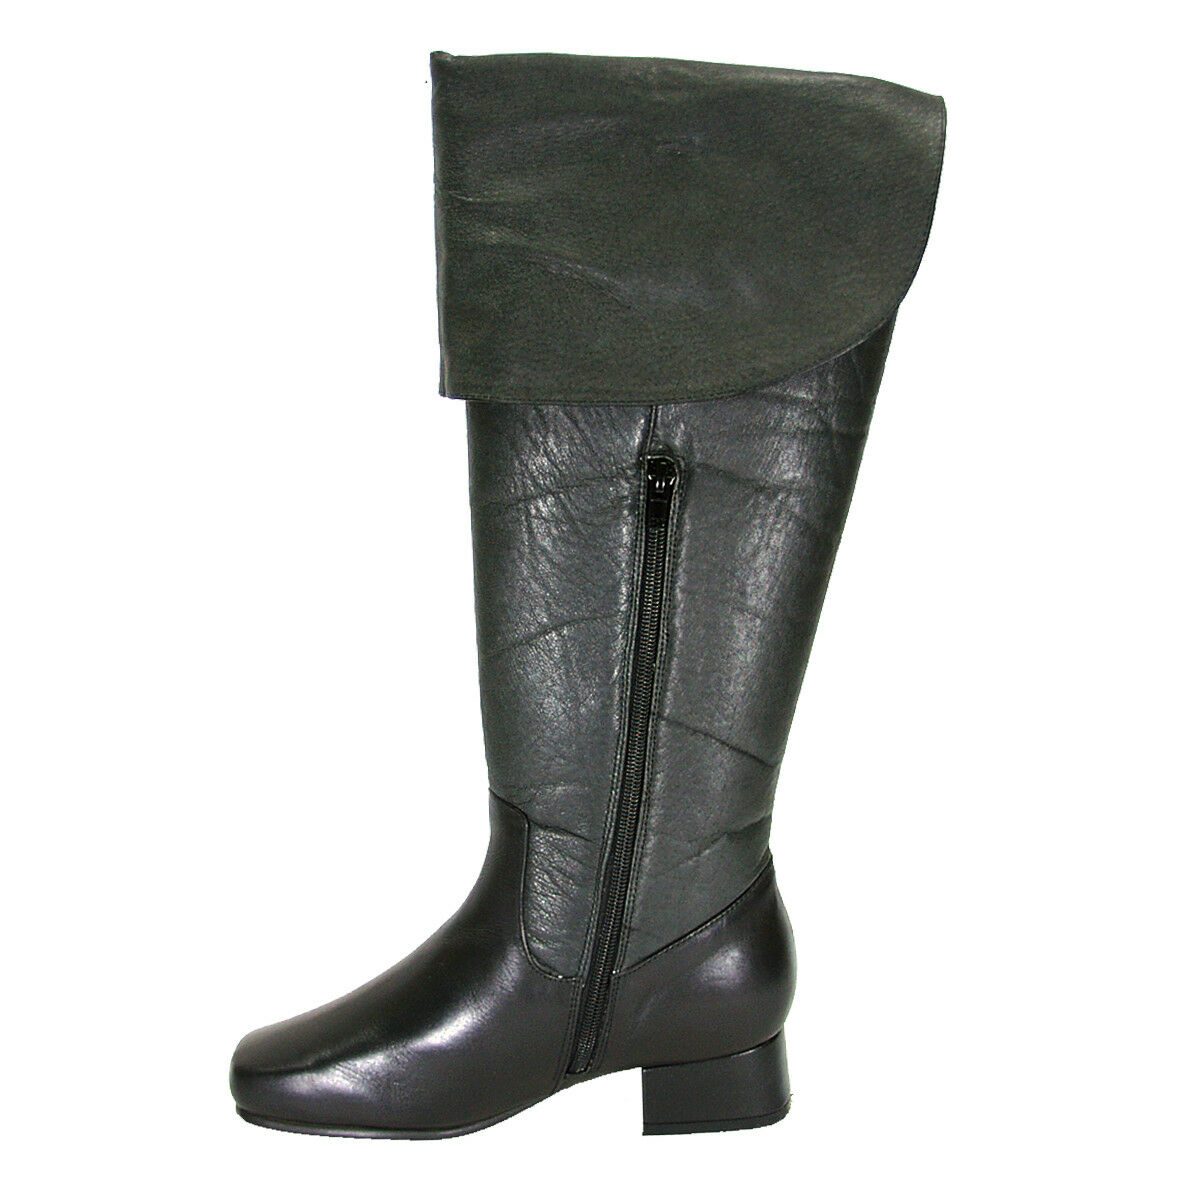 FIC Leather PEERAGE Mira Donna Wide Width Leather FIC Knee High Dress Boots 89f933